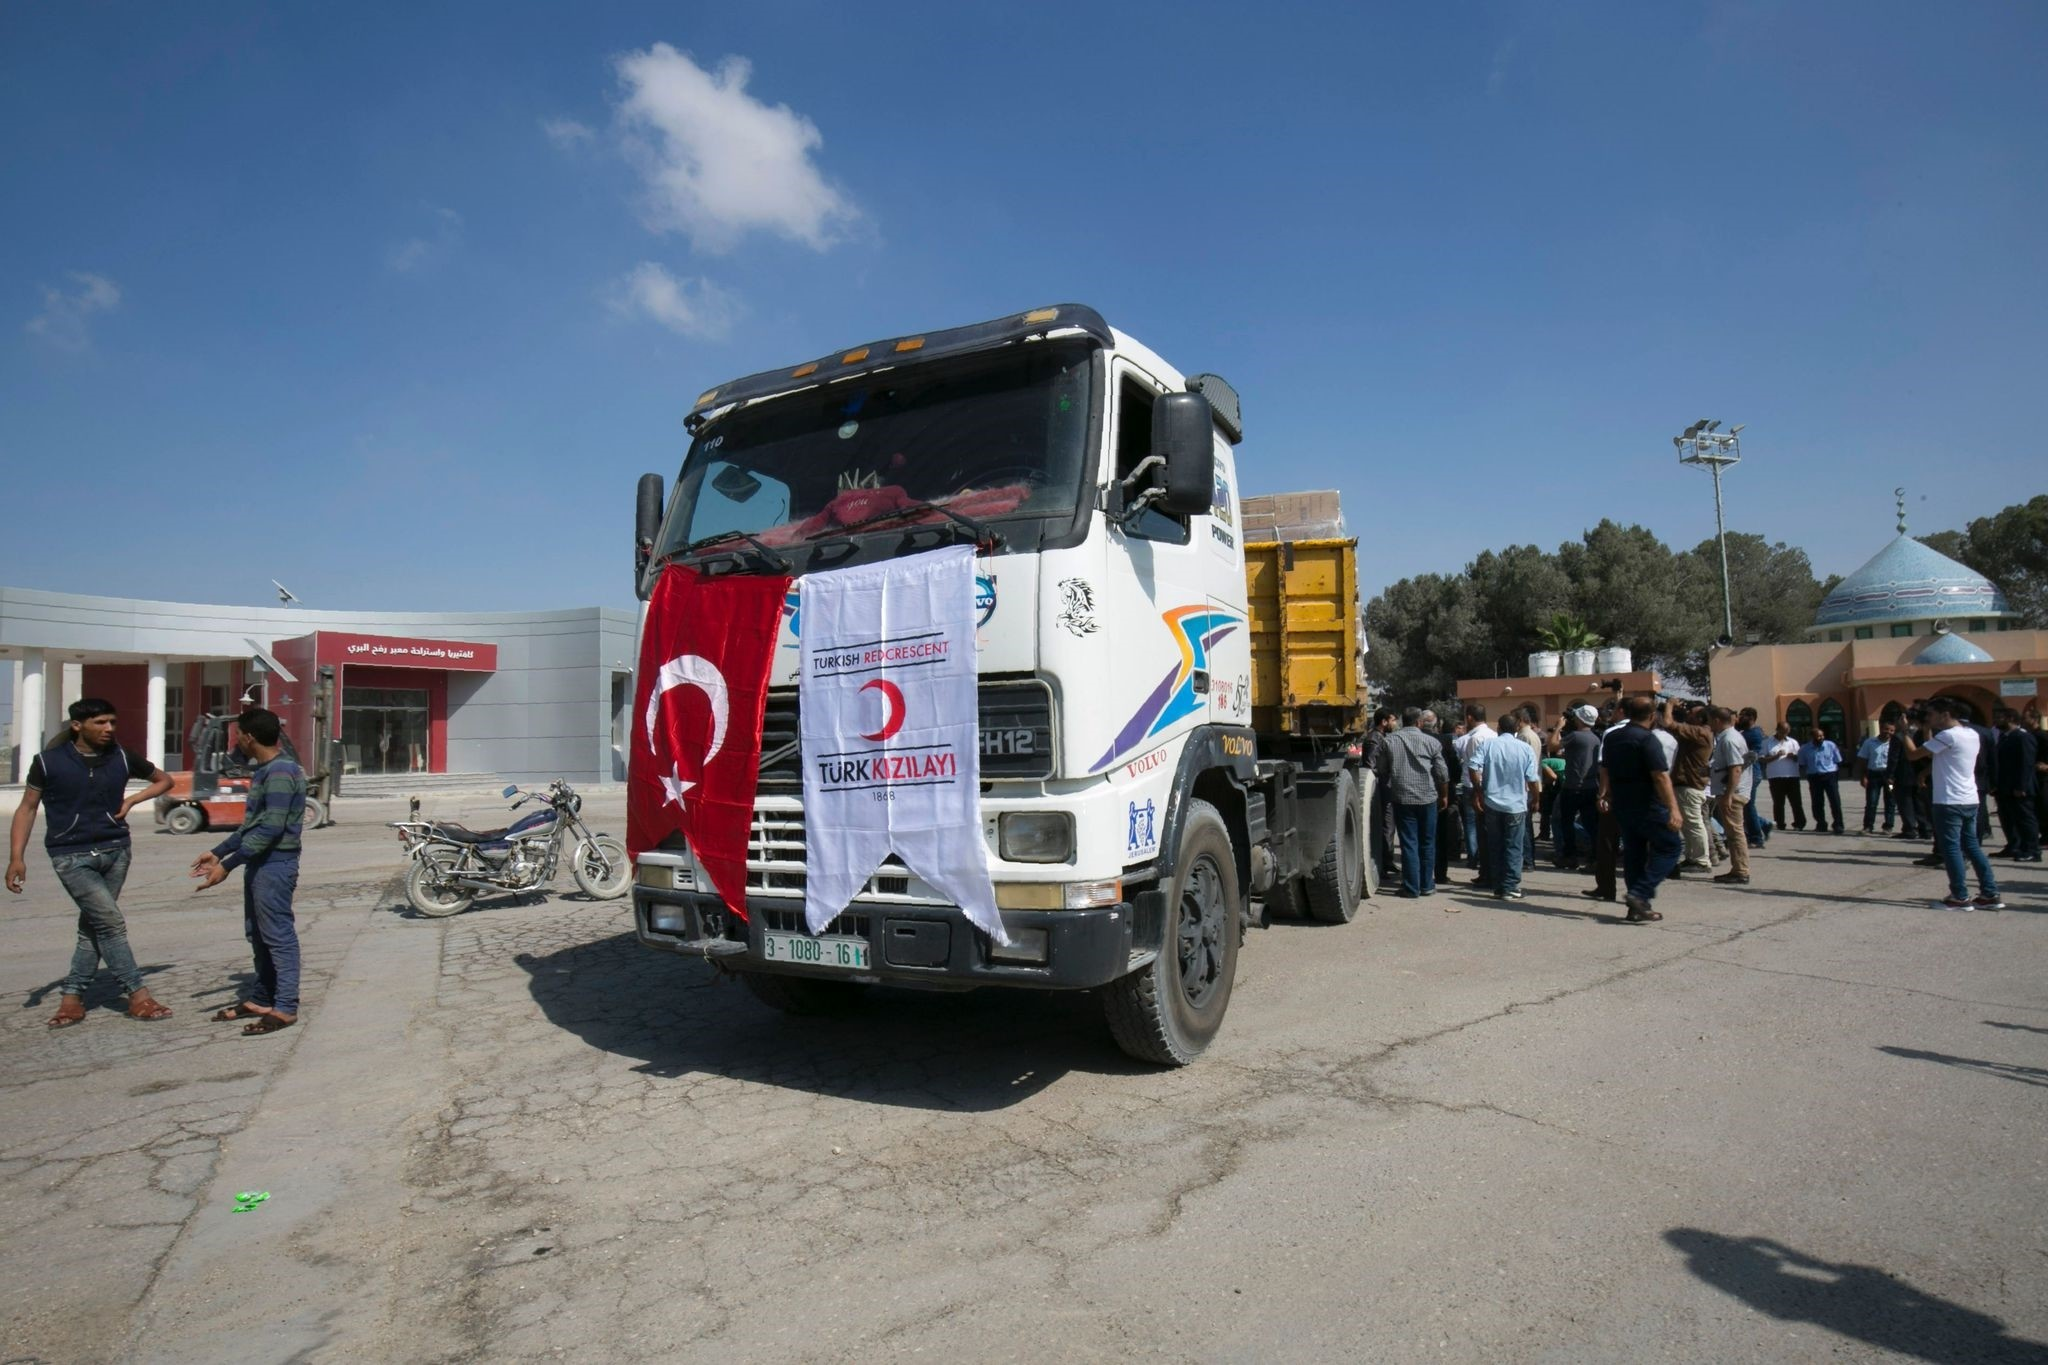 A truck loaded with aid parcels provided by Turkey is parked at the Kerem Shalom crossing near Rafah after it entered the southern Gaza Strip from Israel on July 4, 2016. (AFP Photo)